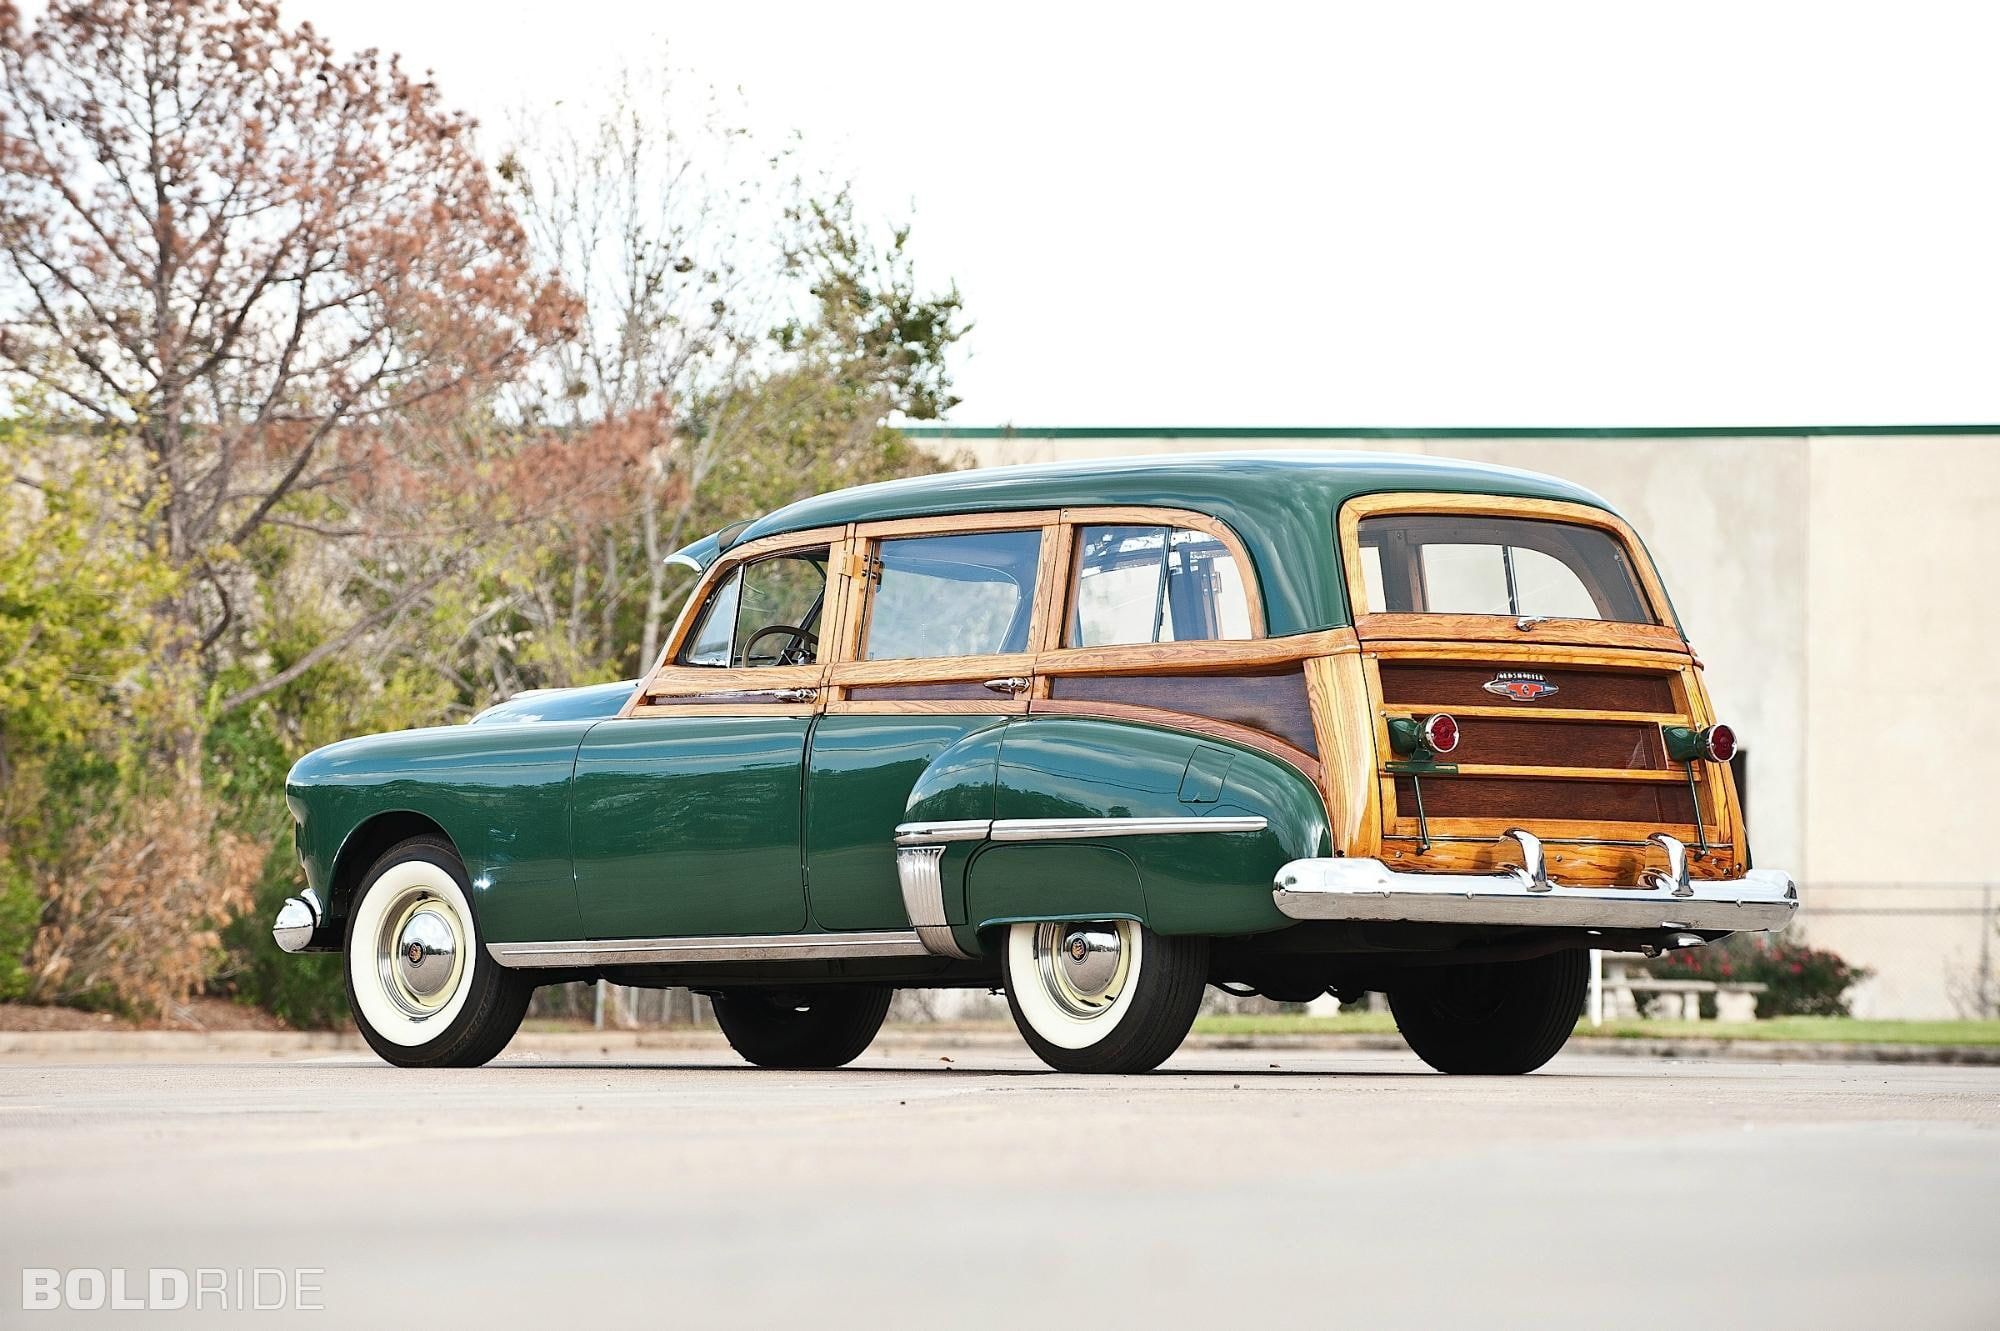 1950 Oldsmobile Wagon 76 #1949 #wagon #oldsmobile #cars #1080P #wallpape